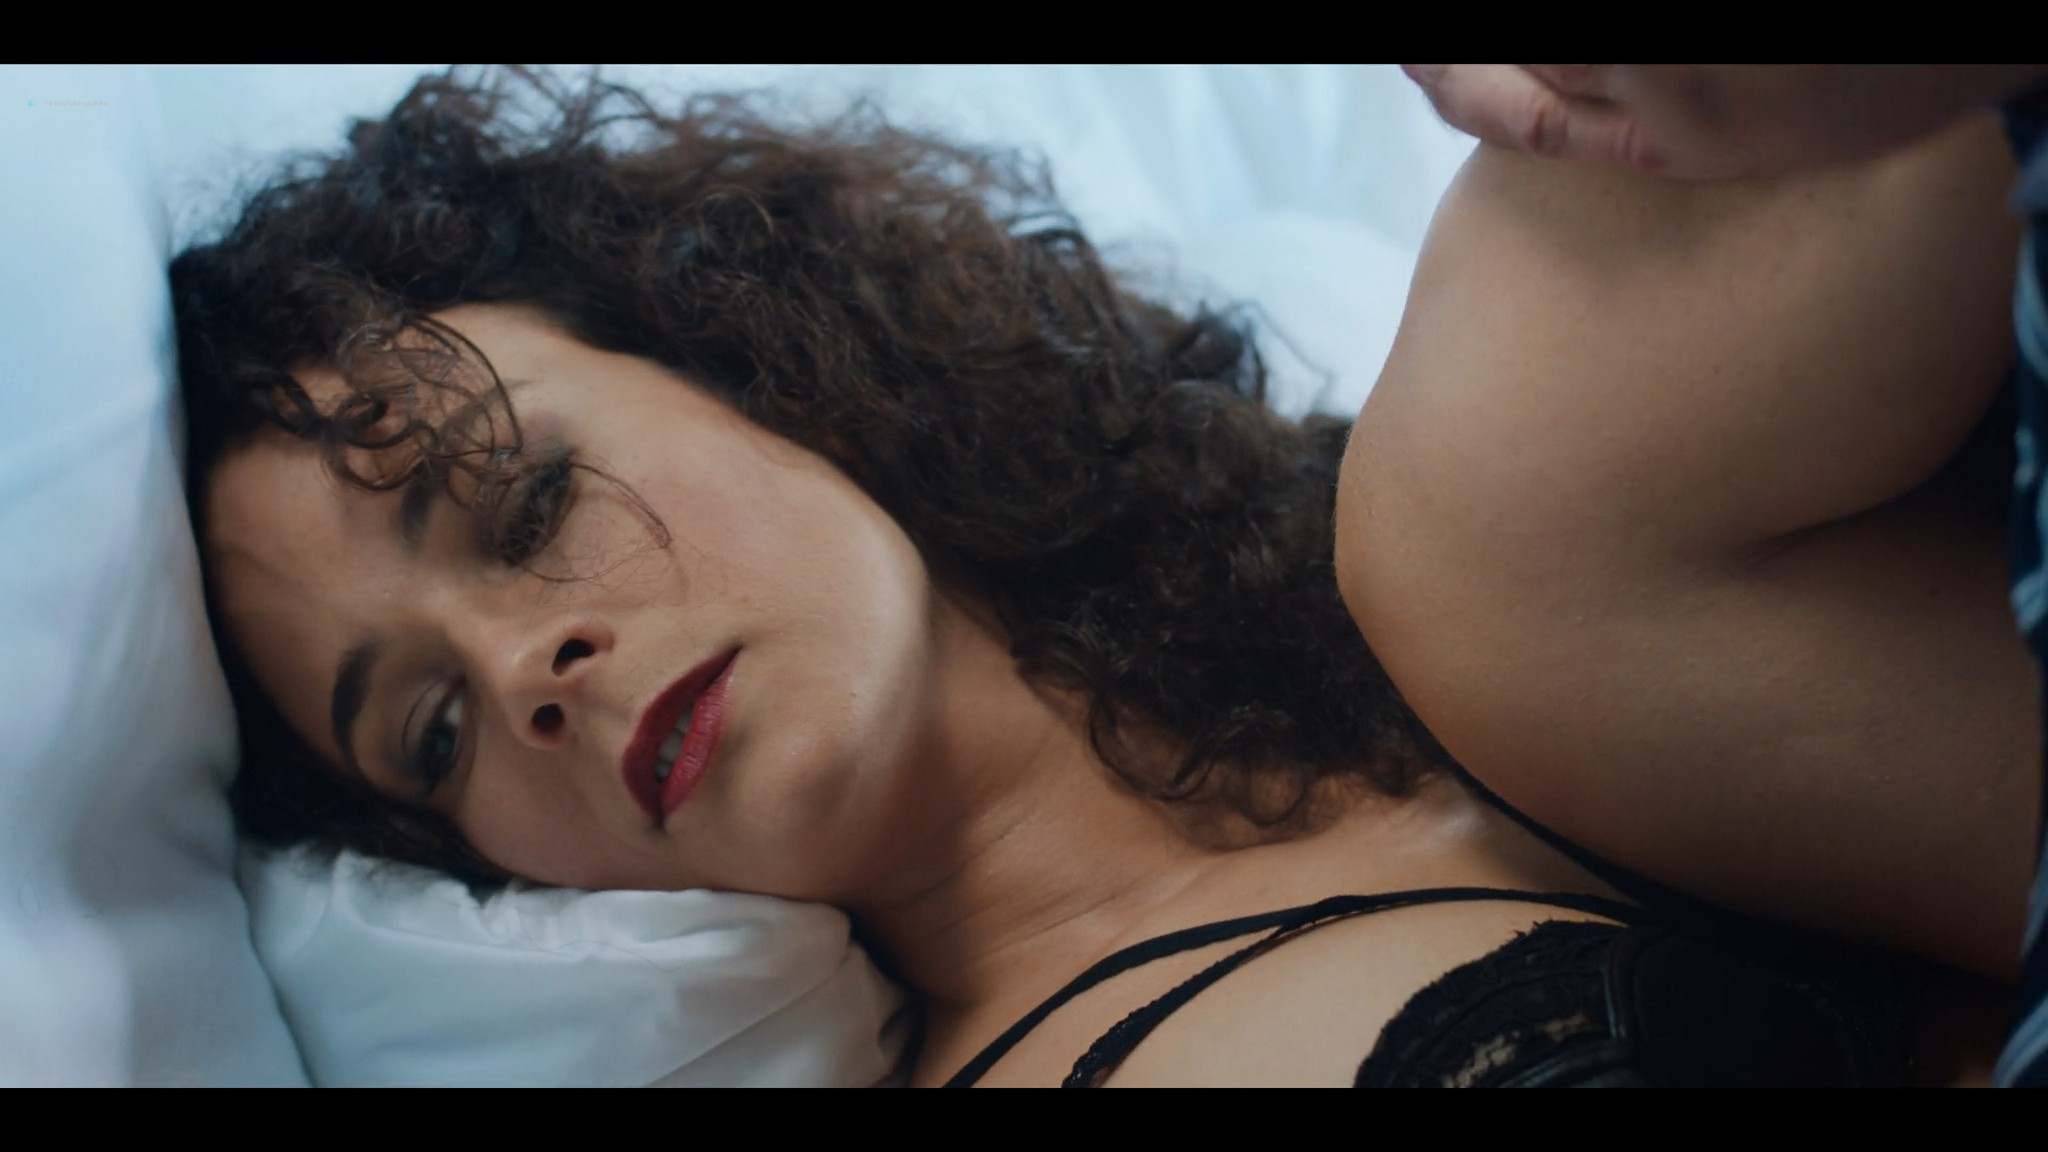 Daphne Wellens nude sex Karina Smulders sex - Women of the Nigh (2019) HD 1080p Web (8)